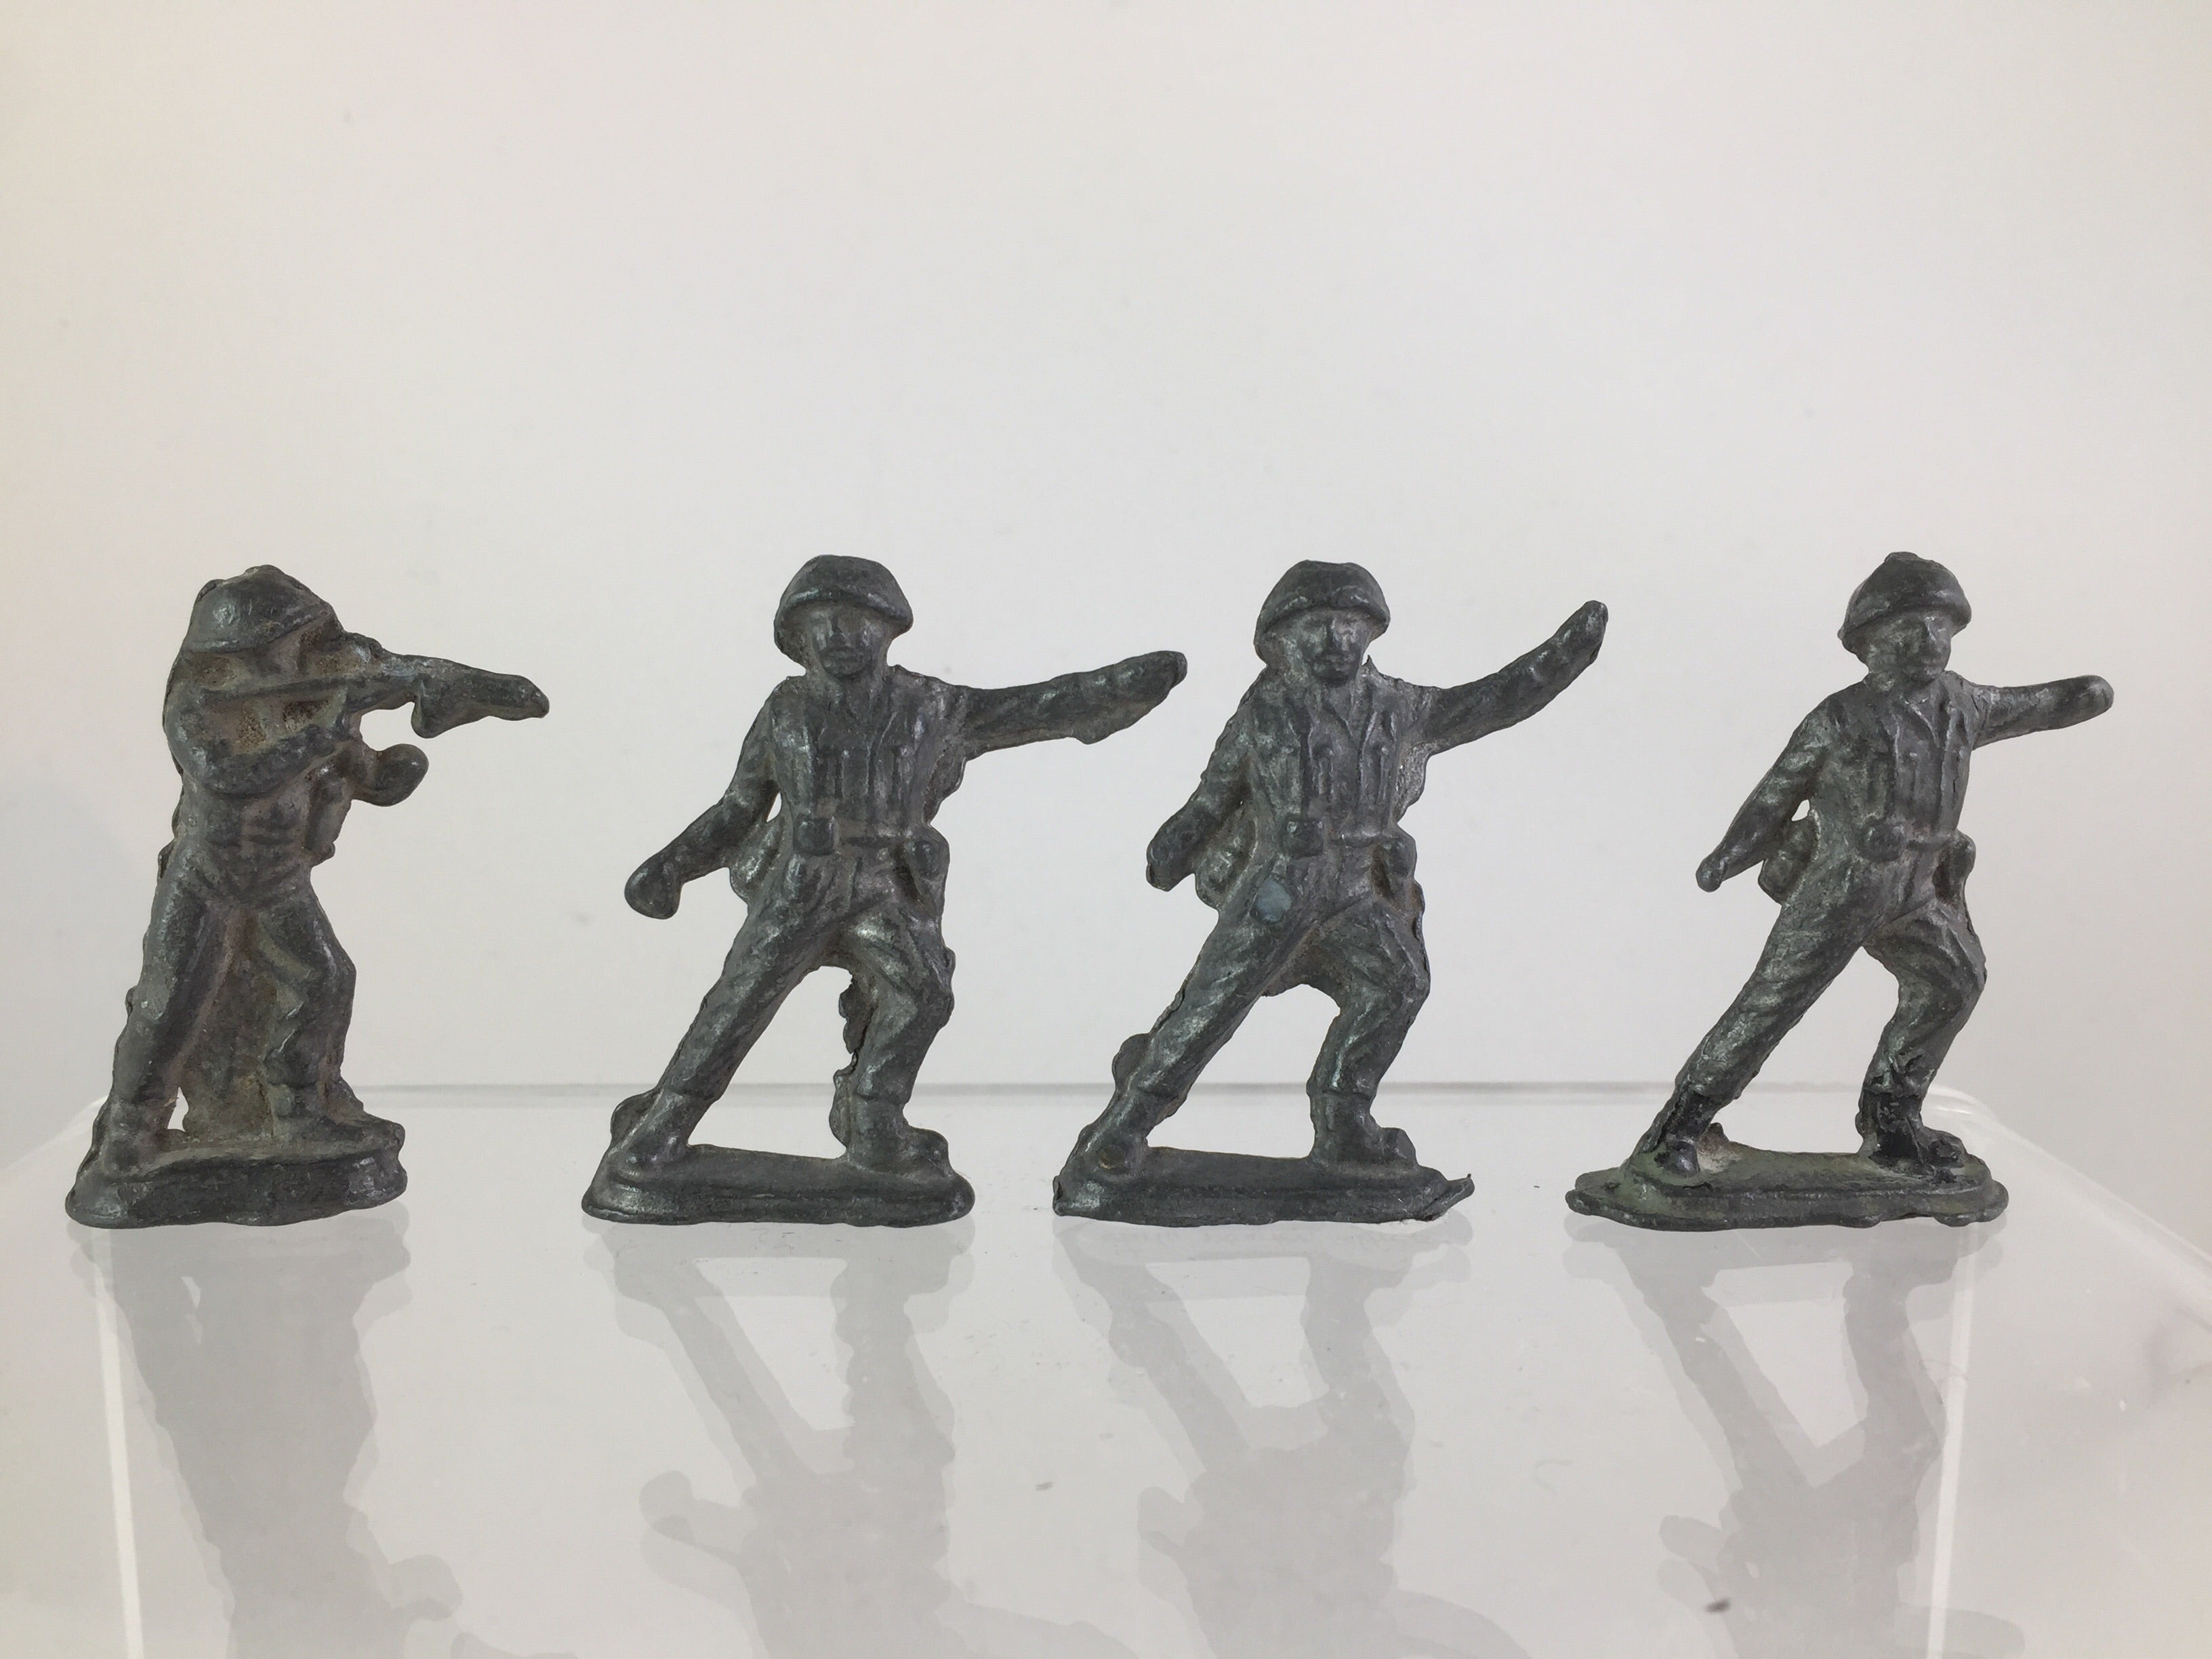 Pewter Toy Soldiers, Set of 4